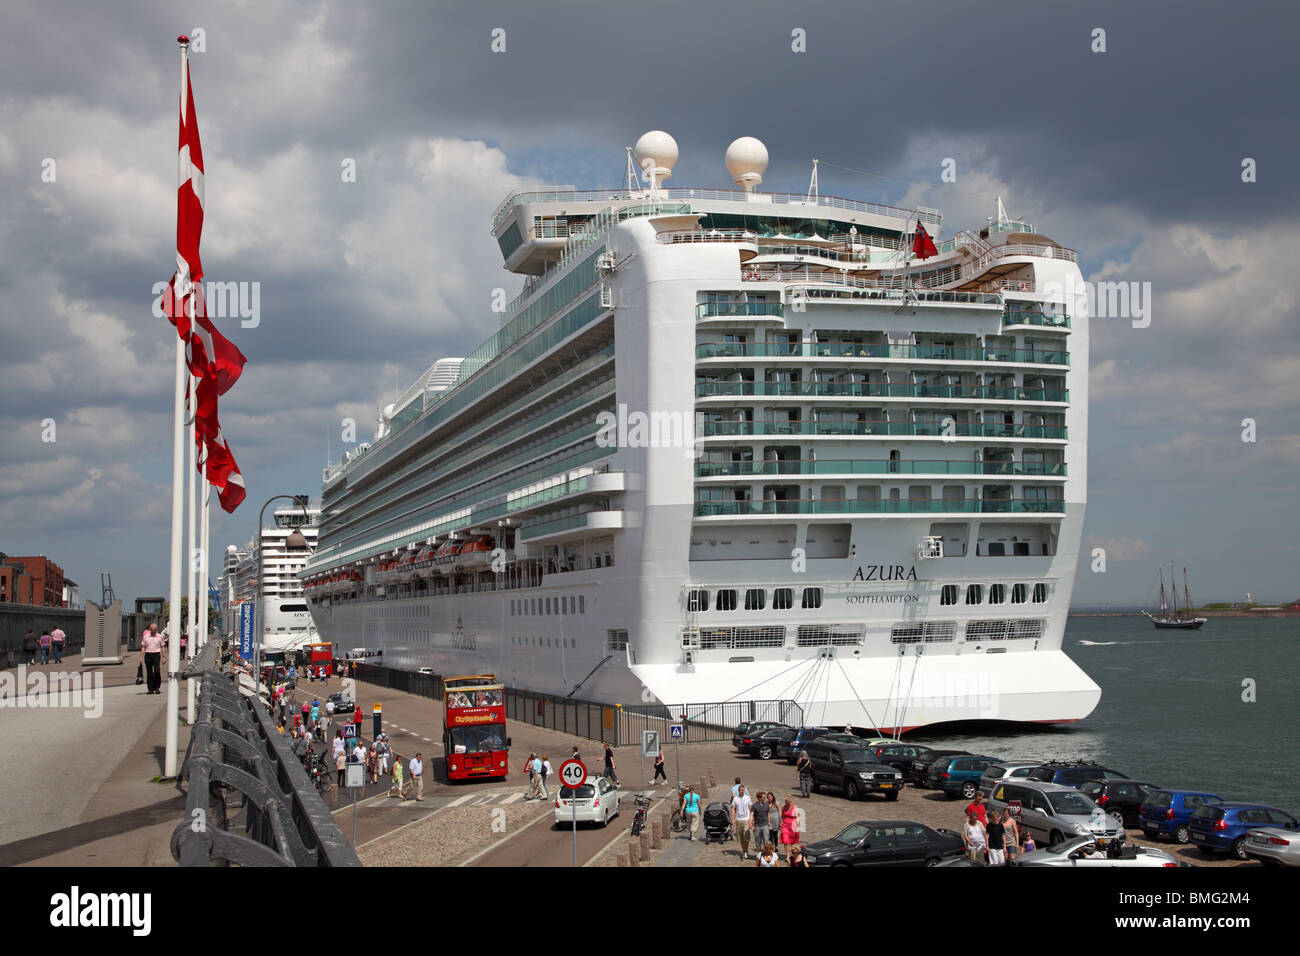 The P&O cruise ship The MS AZURA calling at the port of Copenhagen. - Stock Image